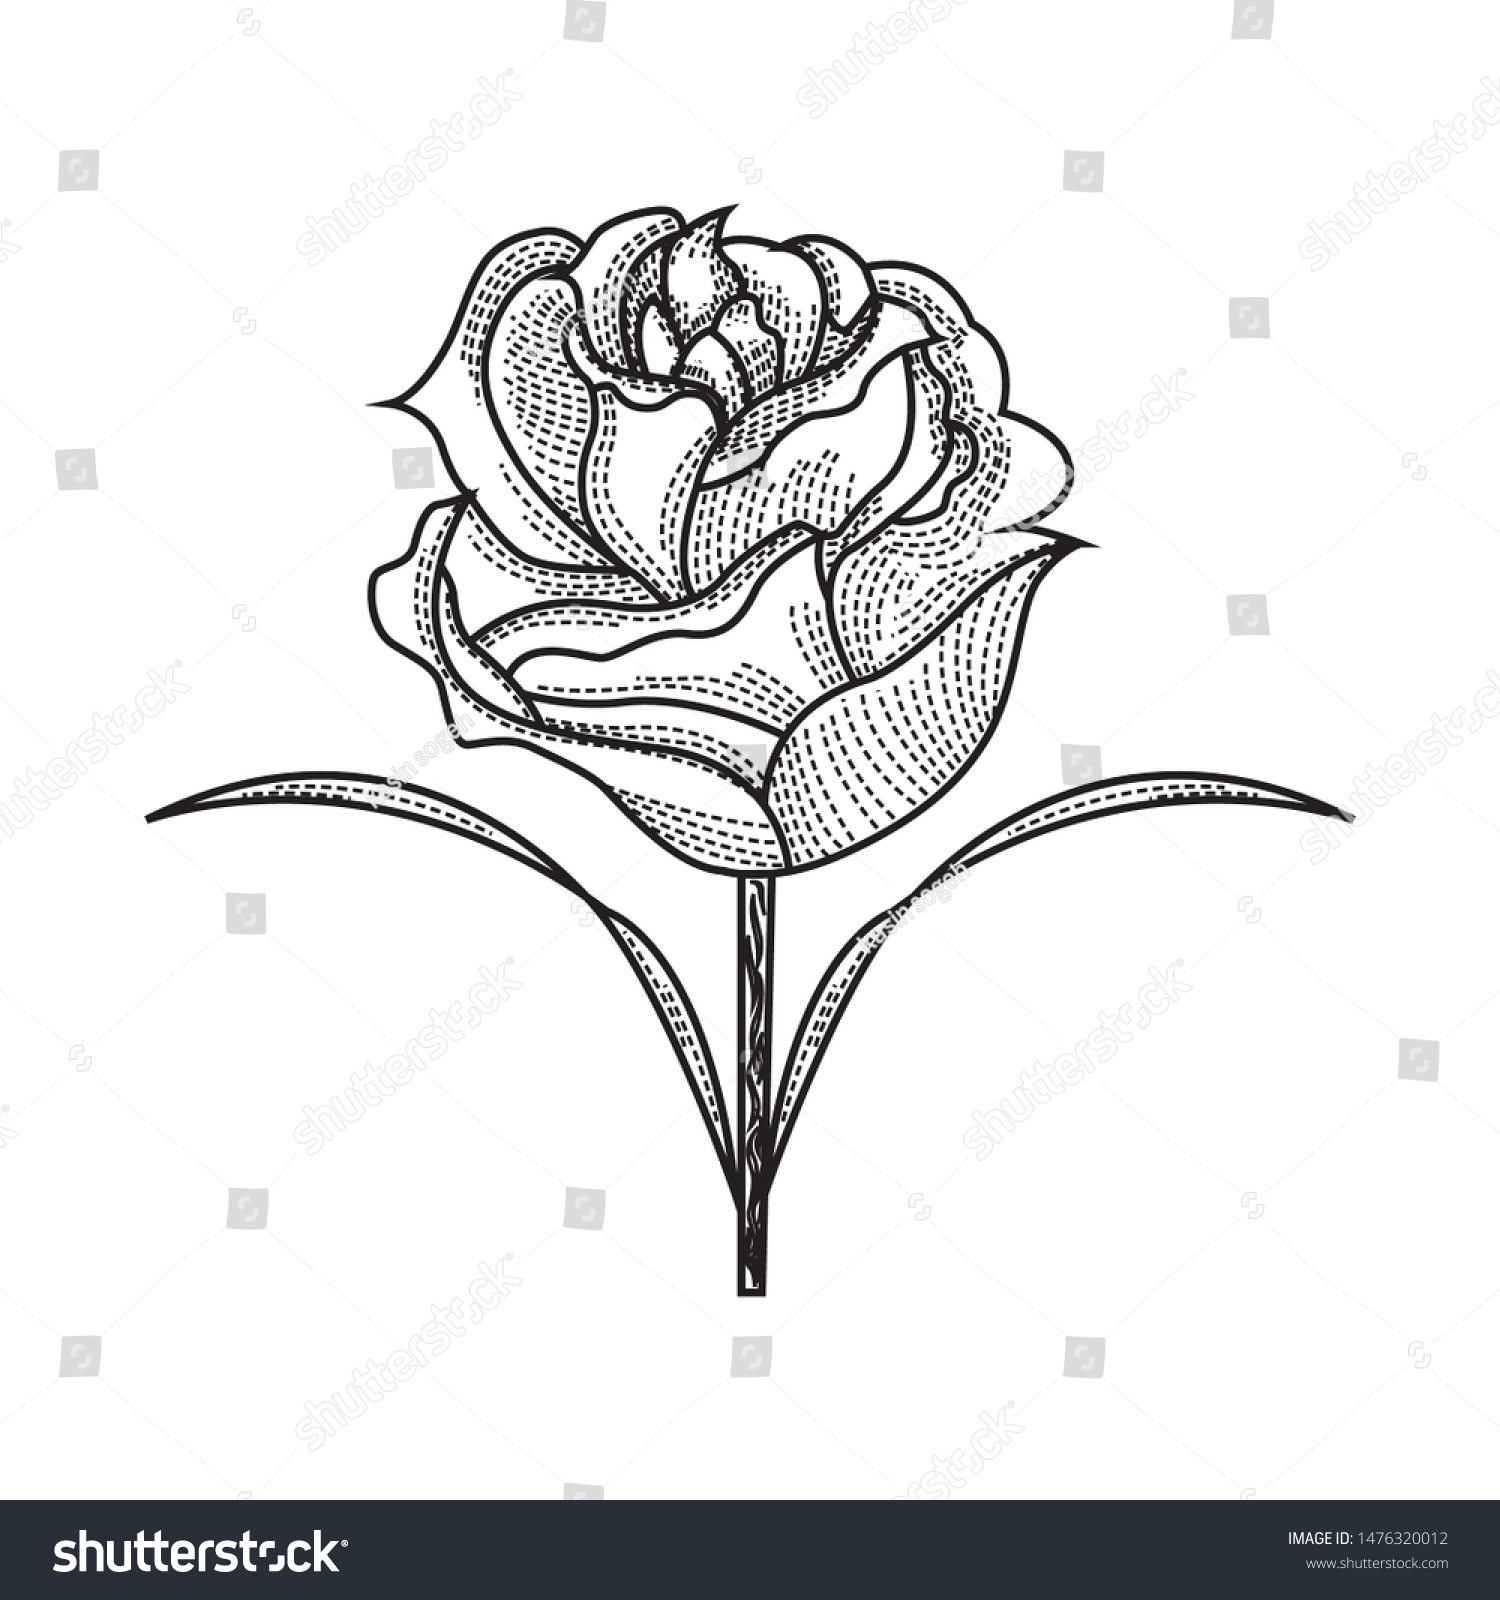 Rose with Thorns coloring page | Free Printable Coloring Pages | 1600x1500